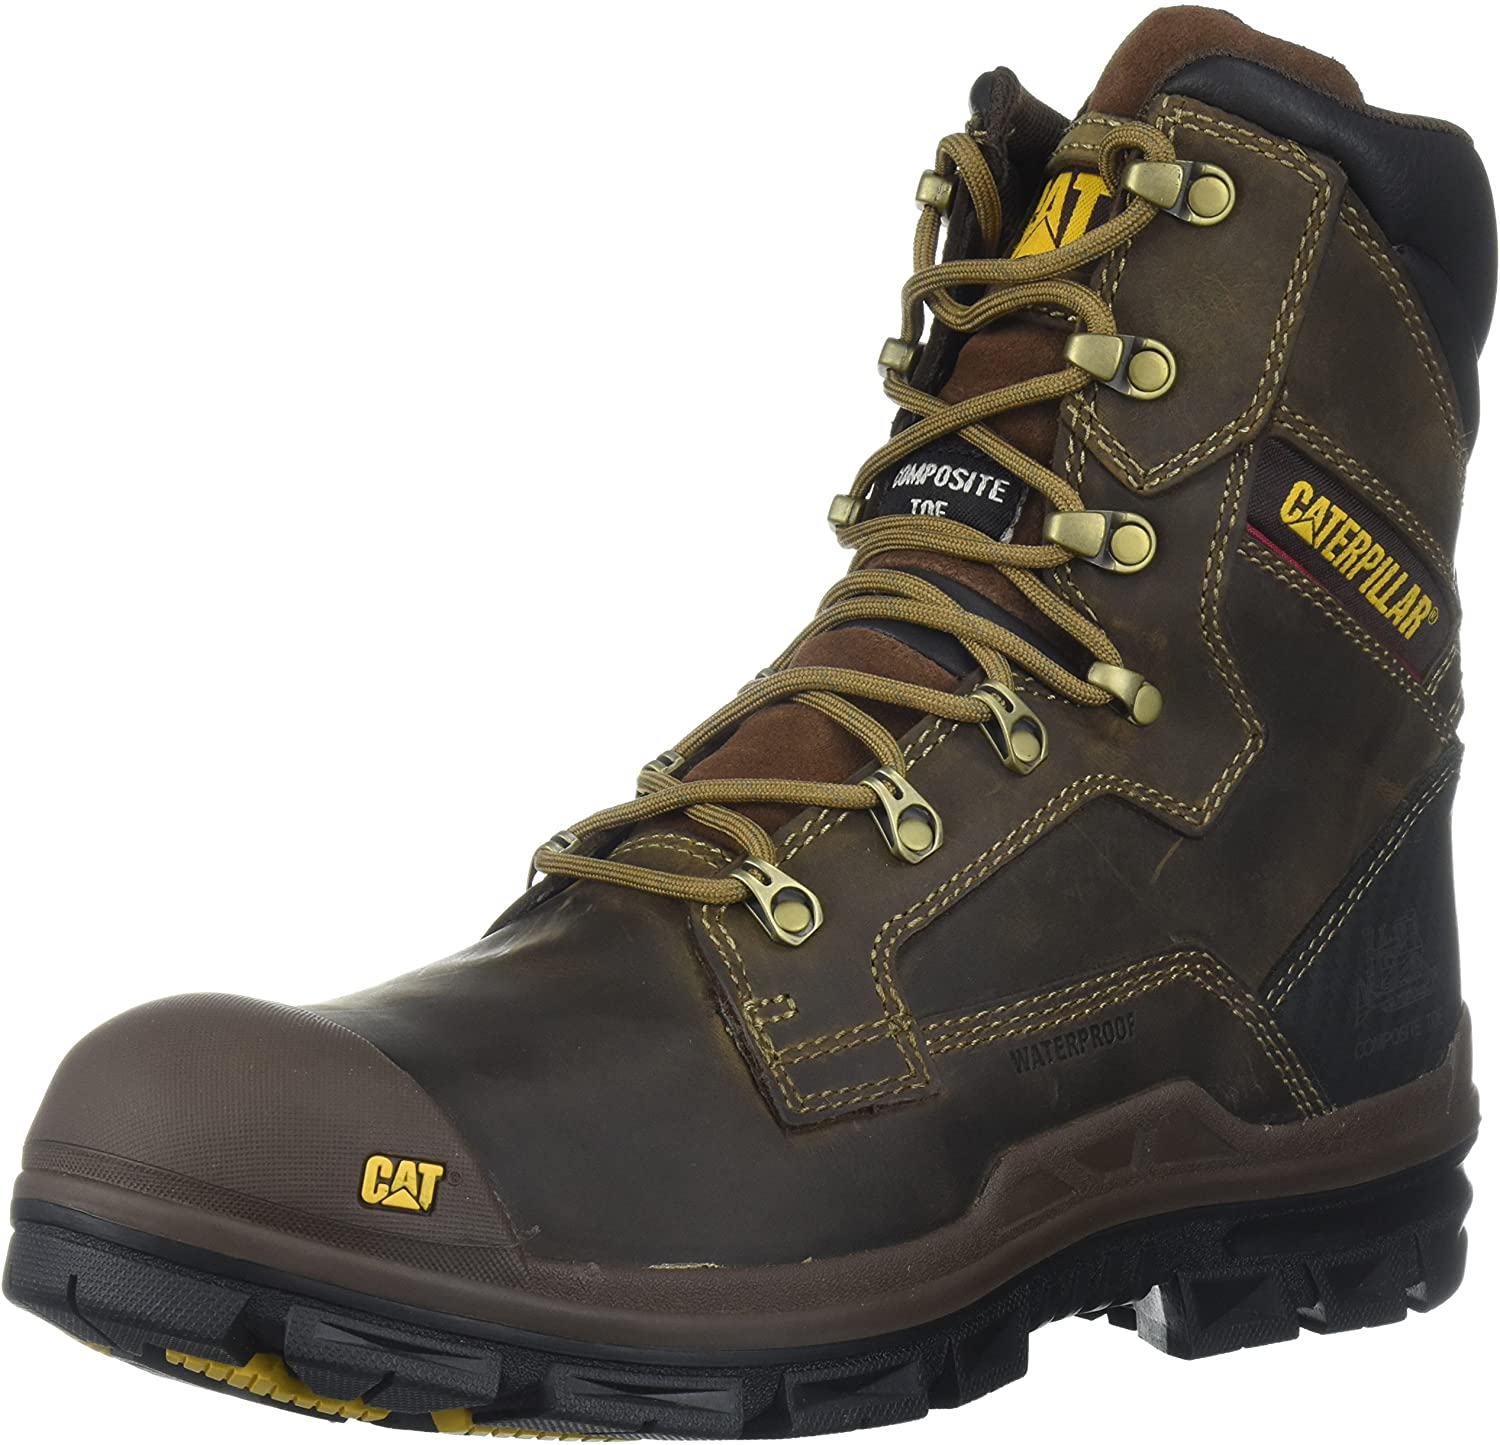 Caterpillar Men's Scaffold Waterproof Nano Toe/Dark Brown Industrial and Construction Shoe